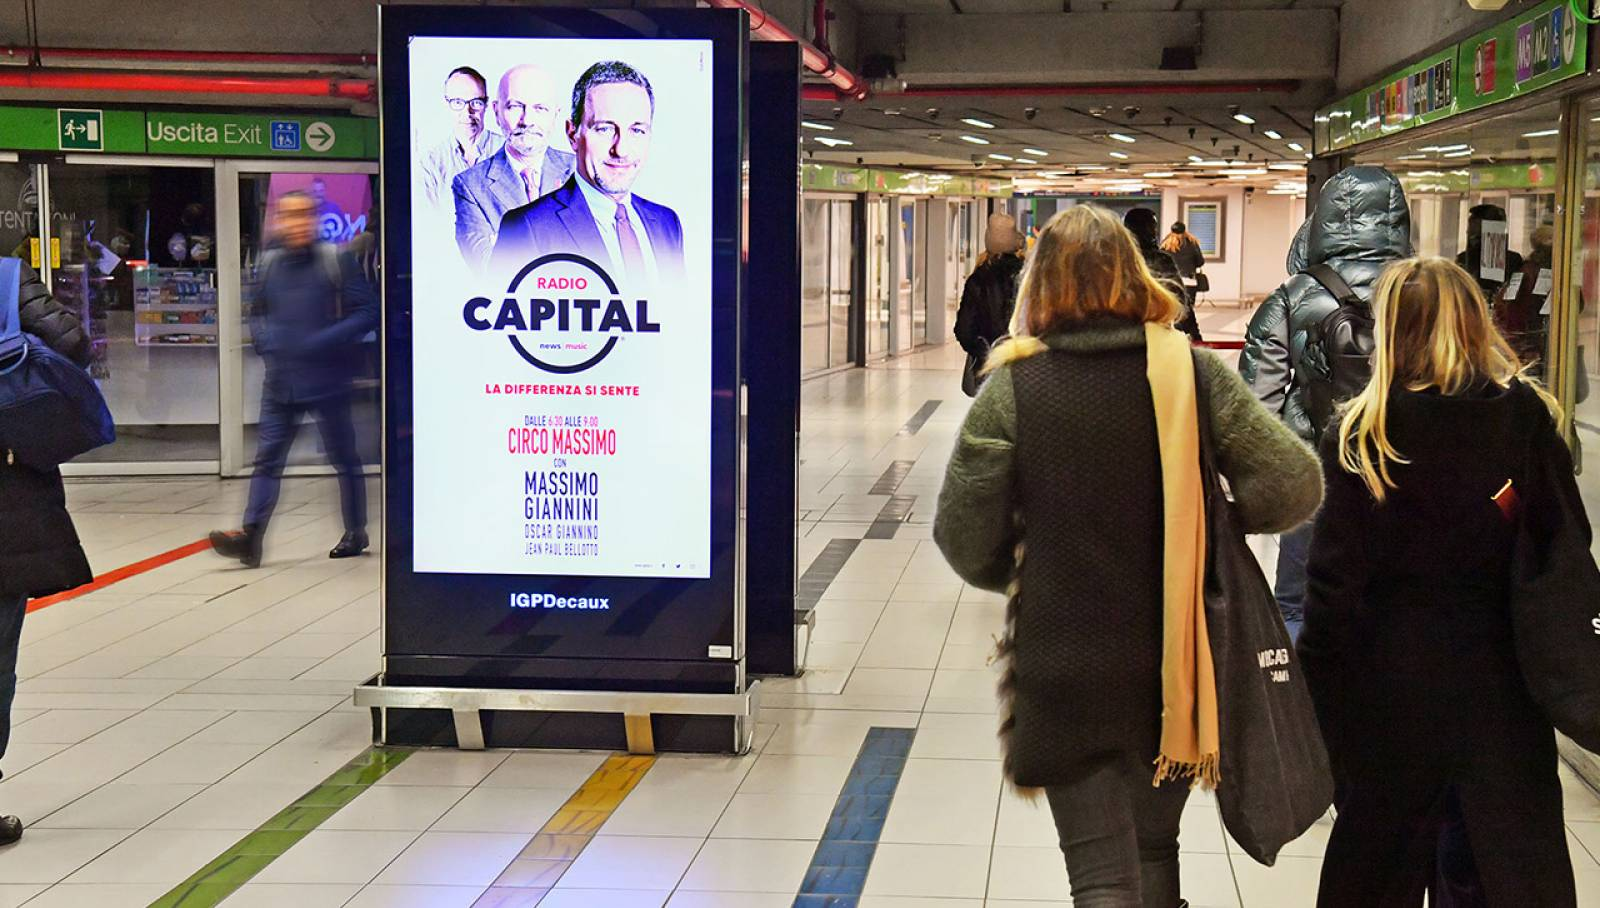 Out of Home advertising Underground Vision Network IGPDecaux for Radio Capital in Milan